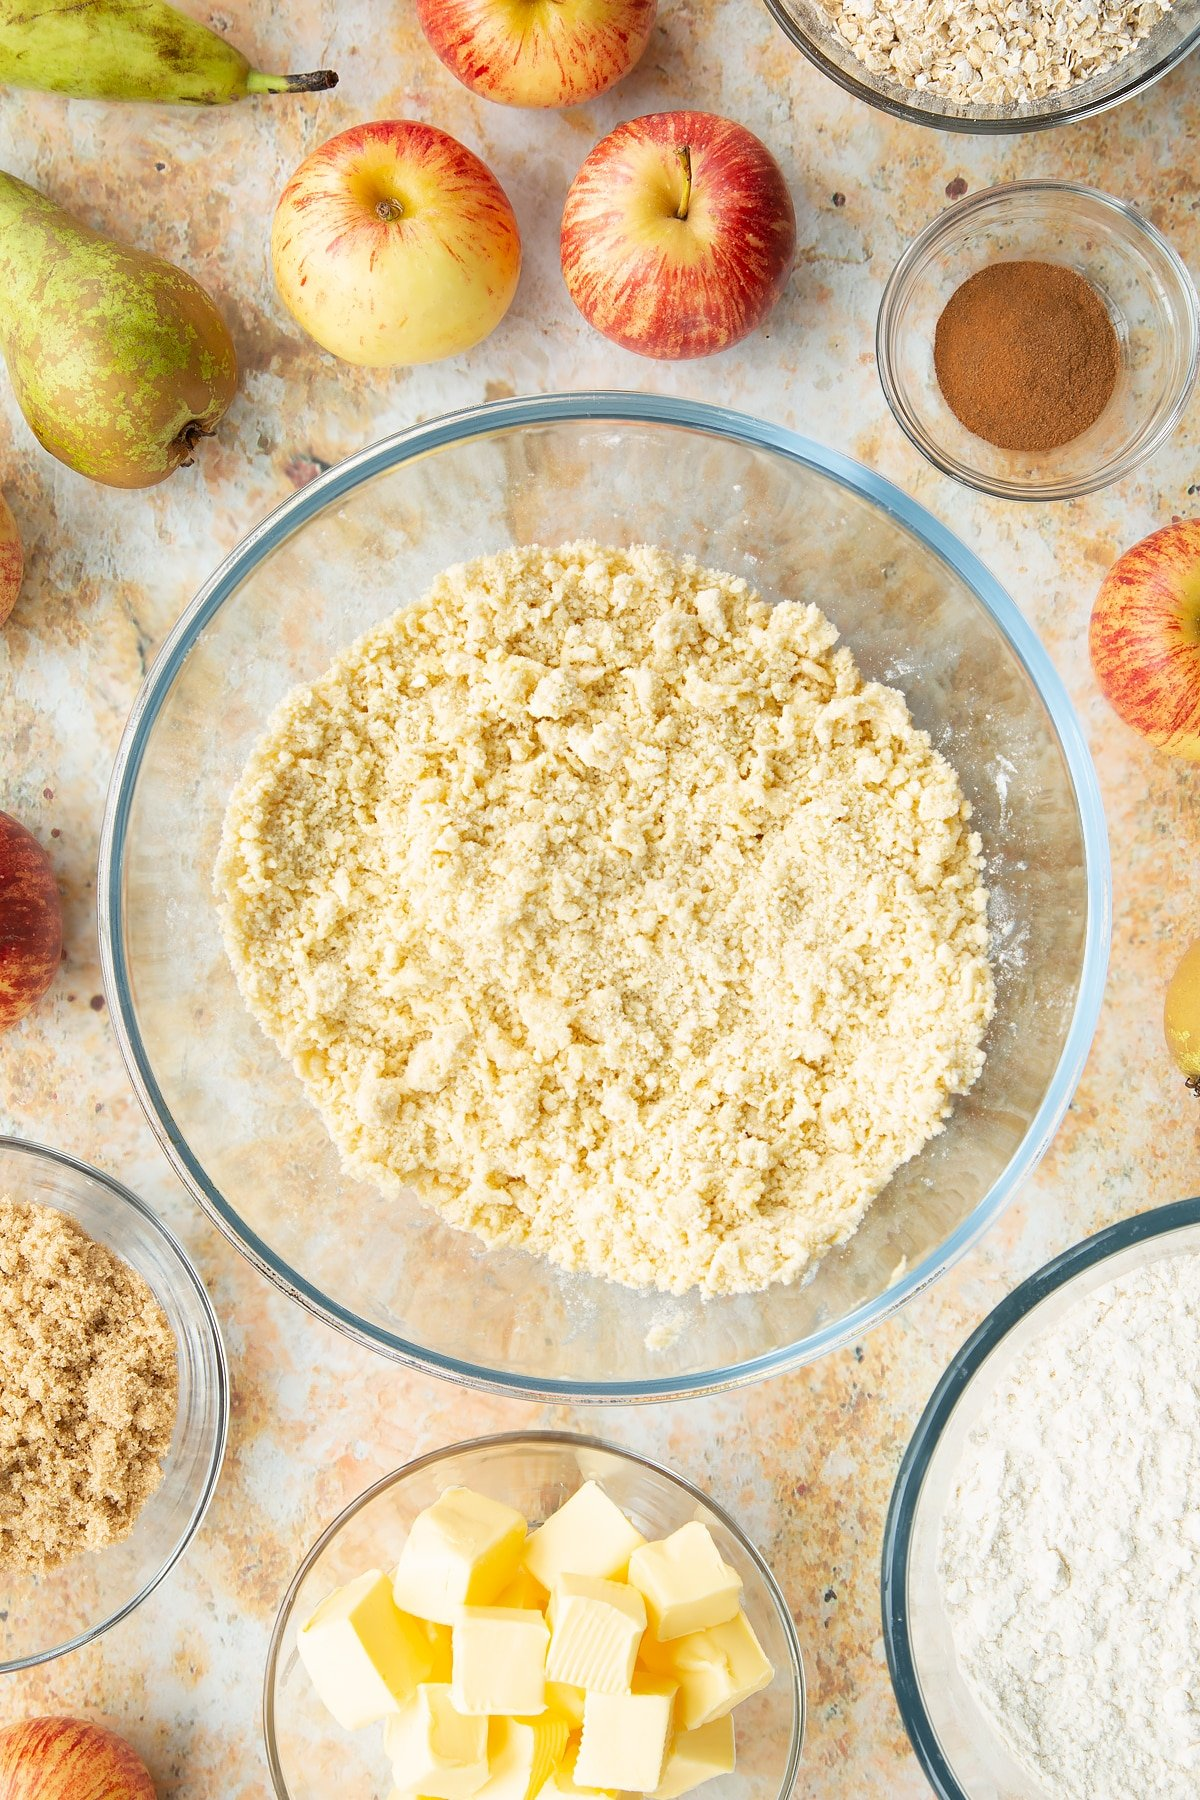 Flour and butter rubbed together in a mixing bowl. Ingredients to make easy apple pear crumble surround the bowl.